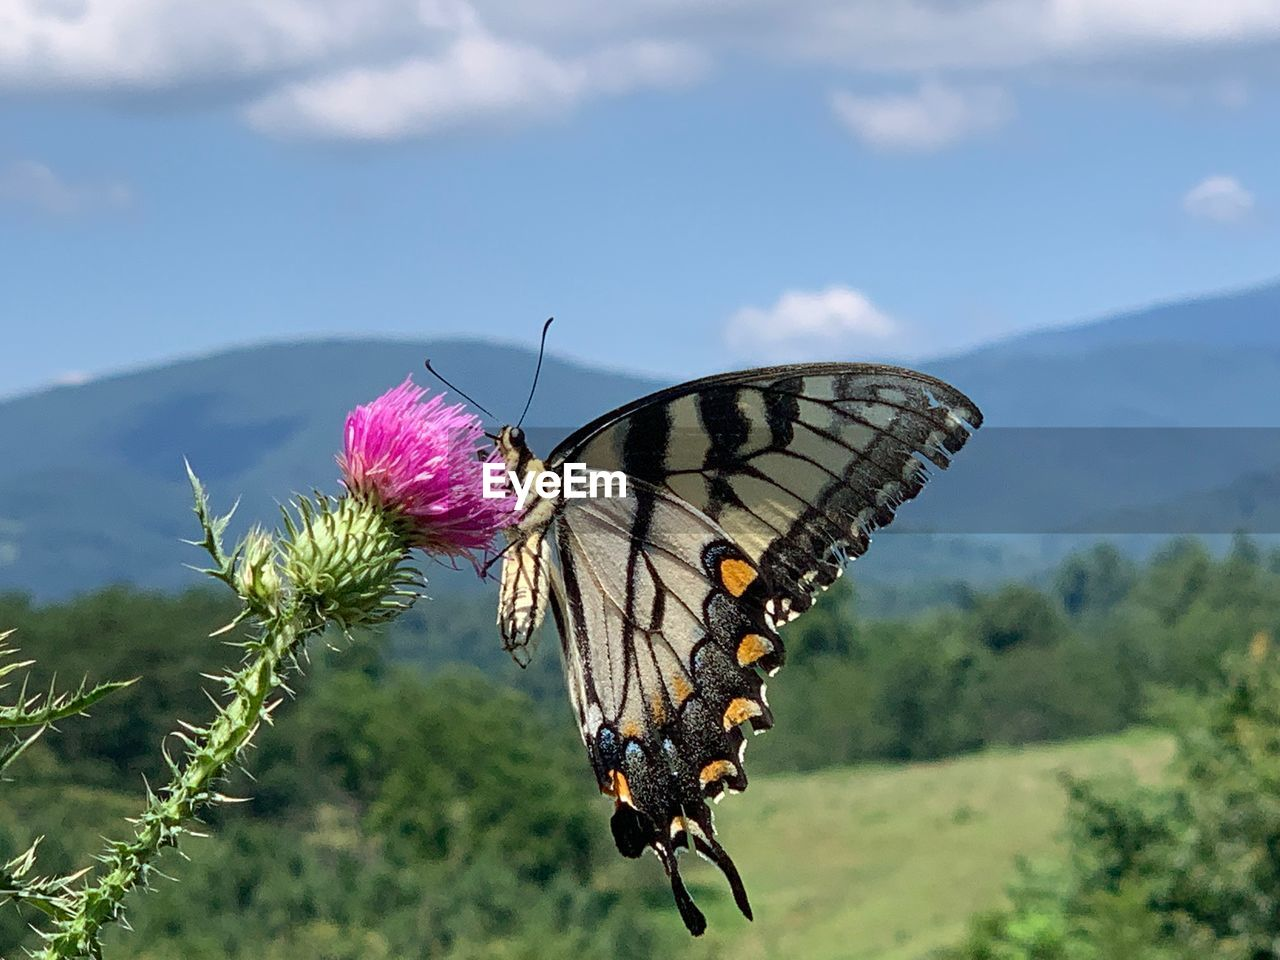 beauty in nature, flower, animal wing, insect, invertebrate, butterfly - insect, plant, flowering plant, animal wildlife, animal, nature, animal themes, animals in the wild, close-up, focus on foreground, one animal, growth, day, fragility, vulnerability, no people, flower head, outdoors, pollination, butterfly